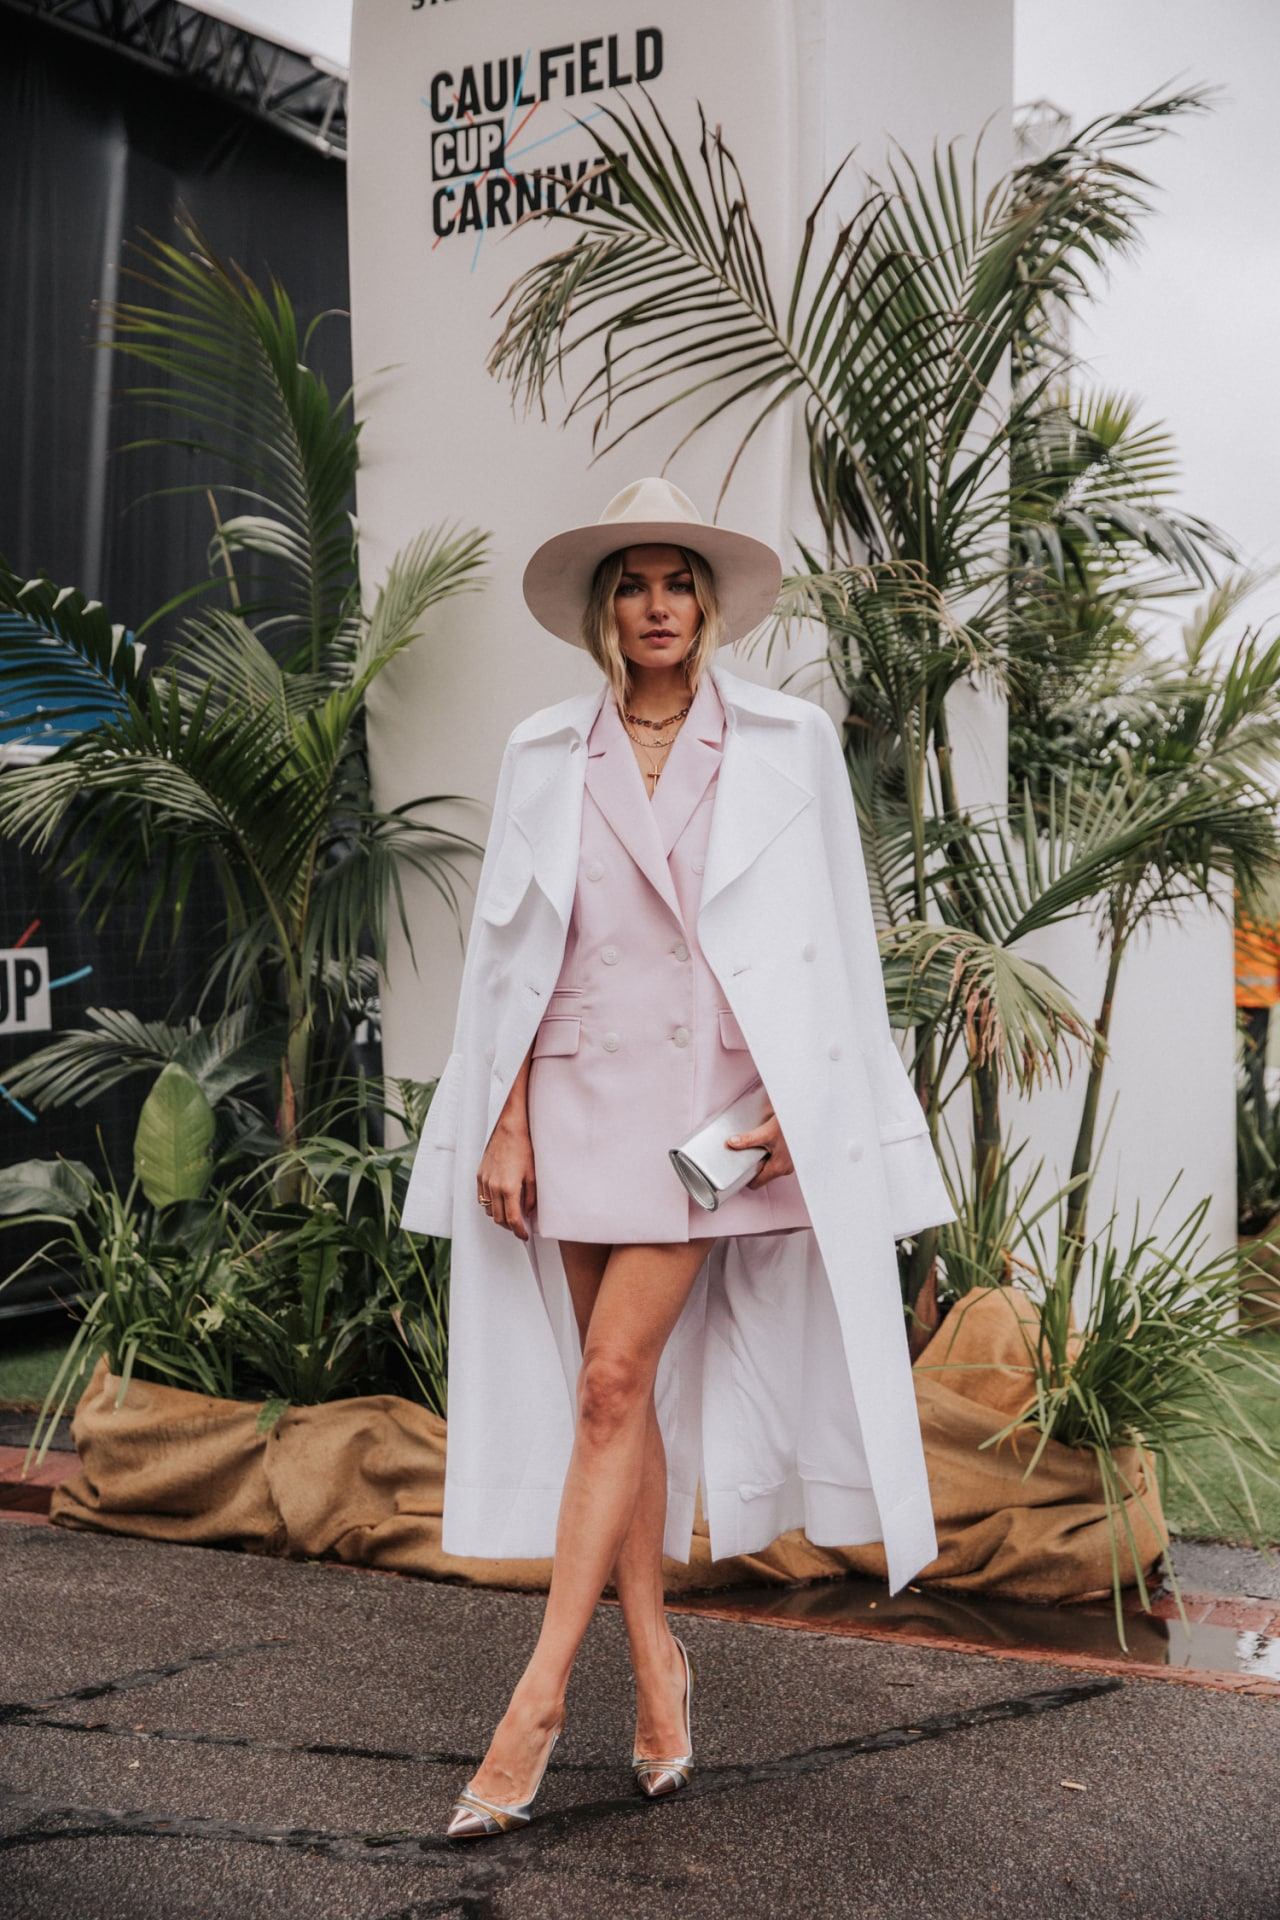 The best street style from the 2018 Caulfield Cup